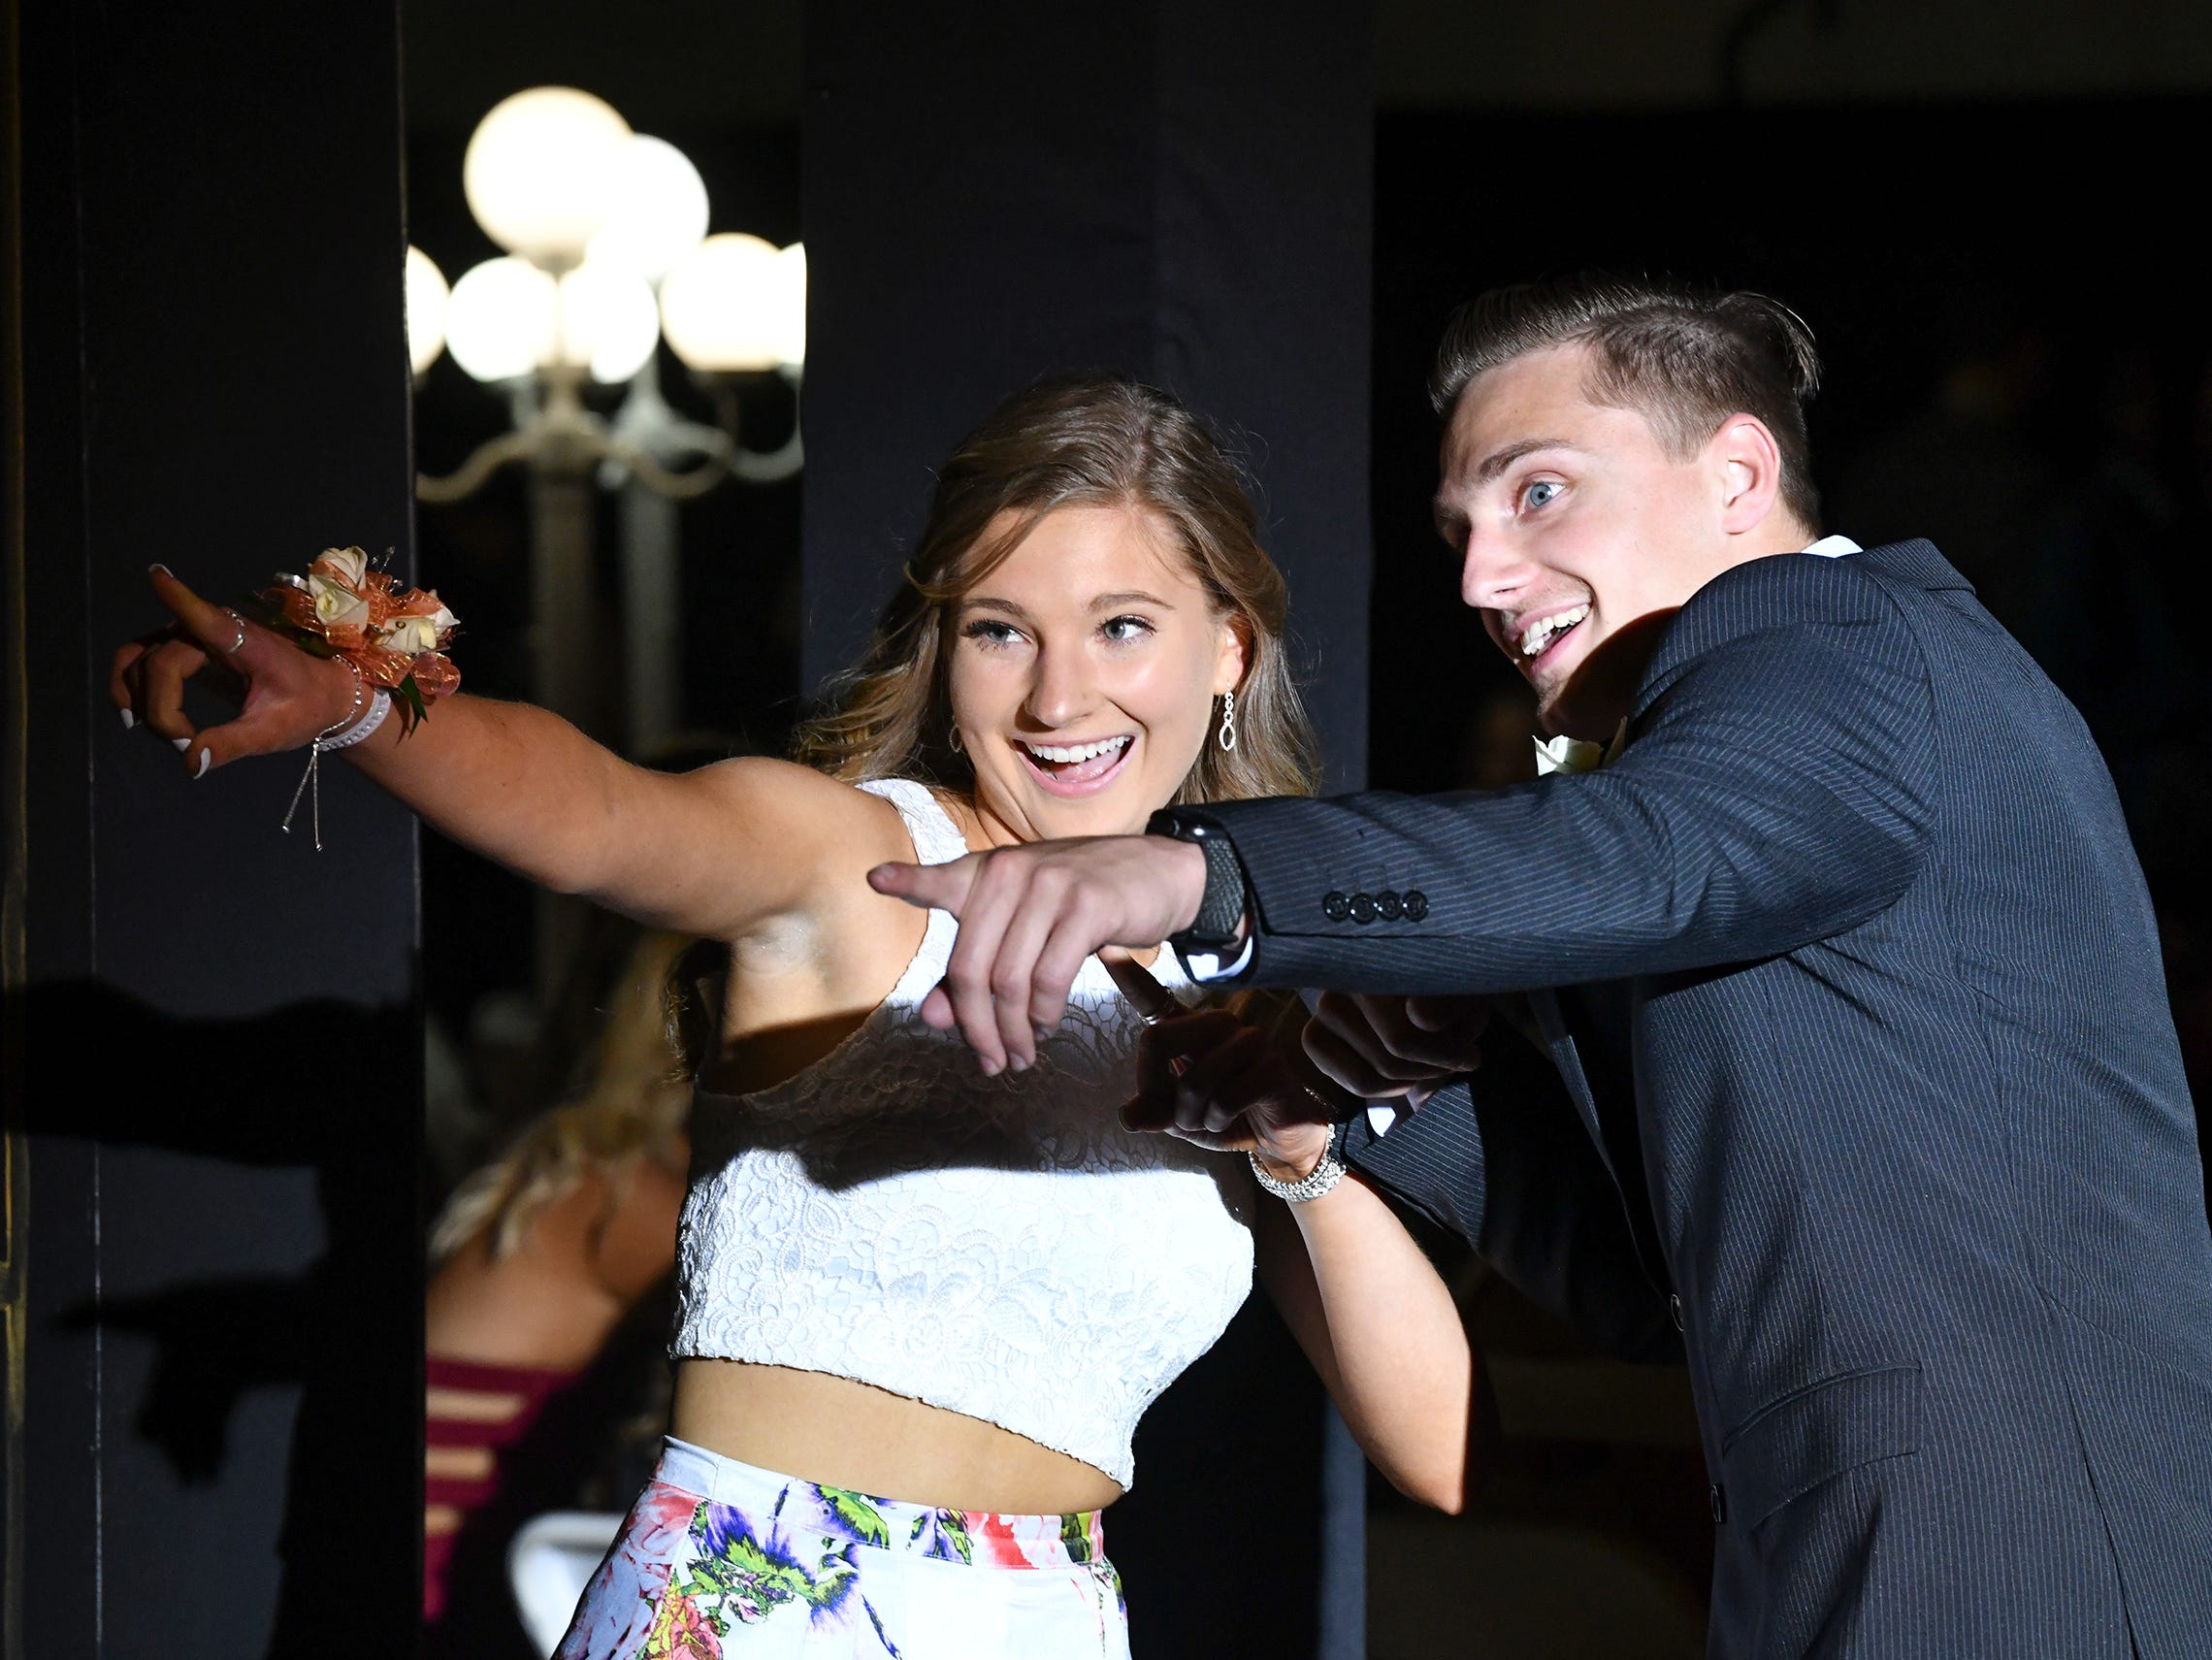 Promgoers strike a pose during prom grand march Saturday, May 4, at Cathedral High School in St. Cloud.